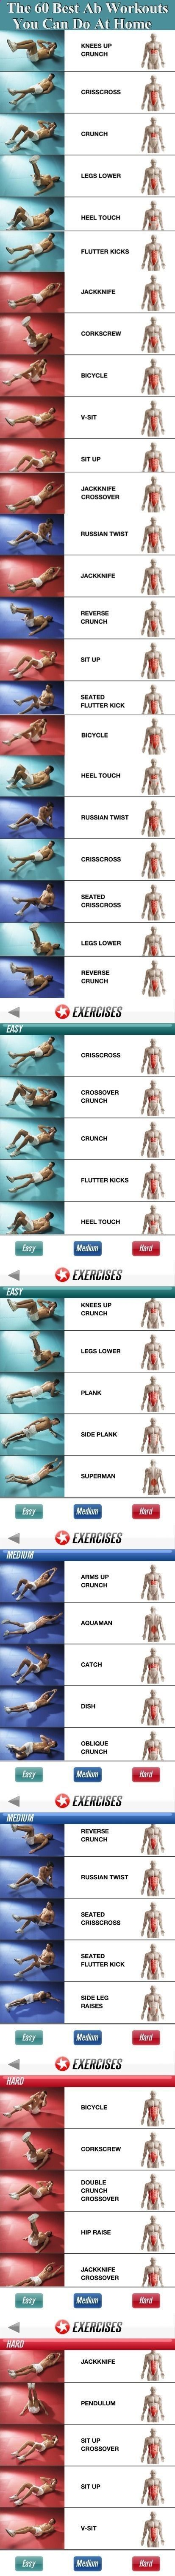 Ultimate List of AB Workout Examples selected by OmniBeaux.com.